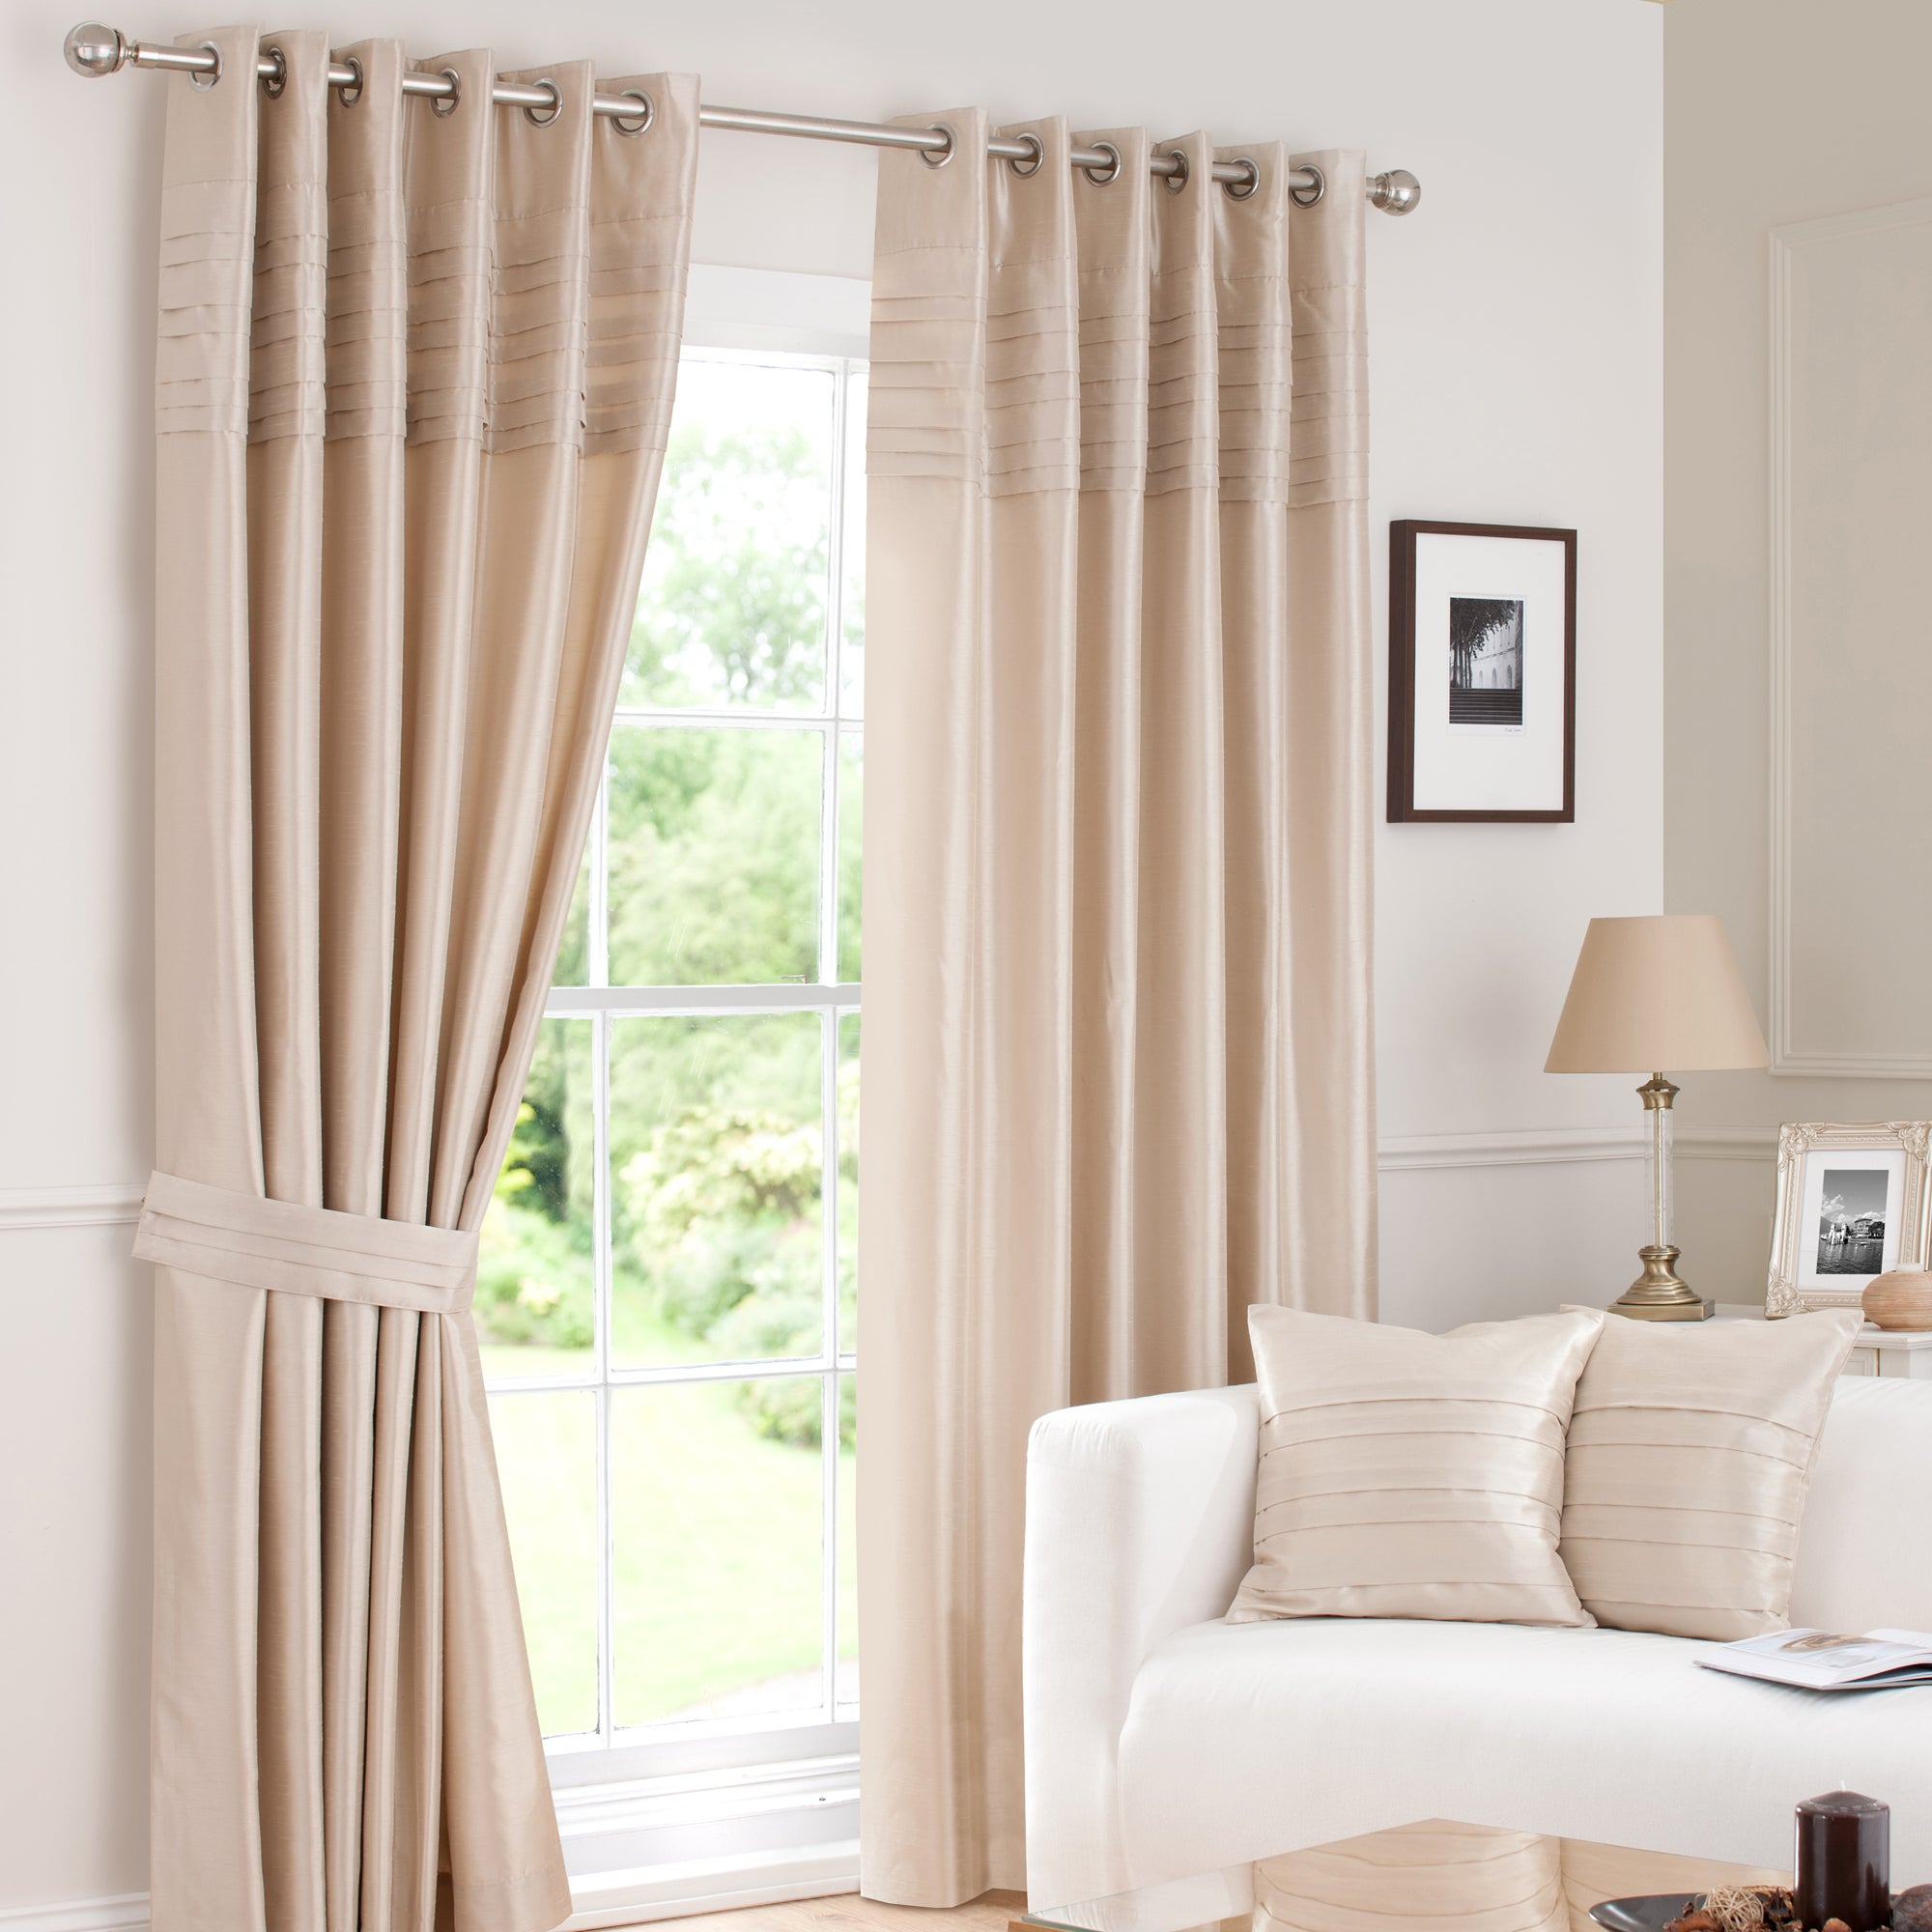 Hotel Oyster Pintuck Lined Eyelet Curtains